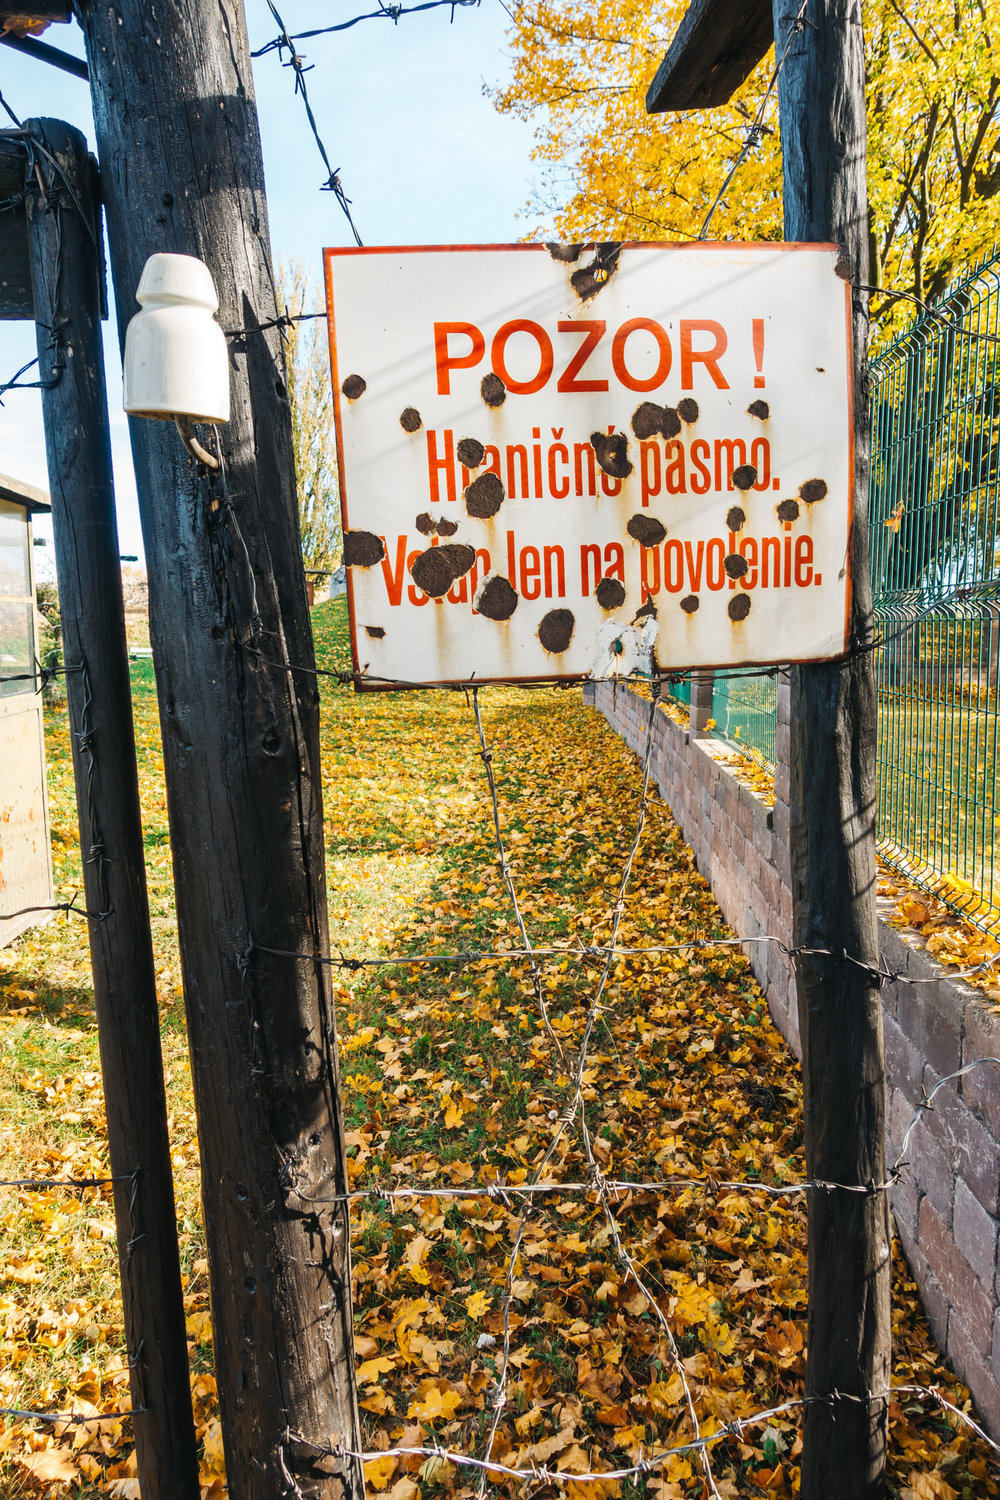 """Pozor!"" means ""Warning!"""